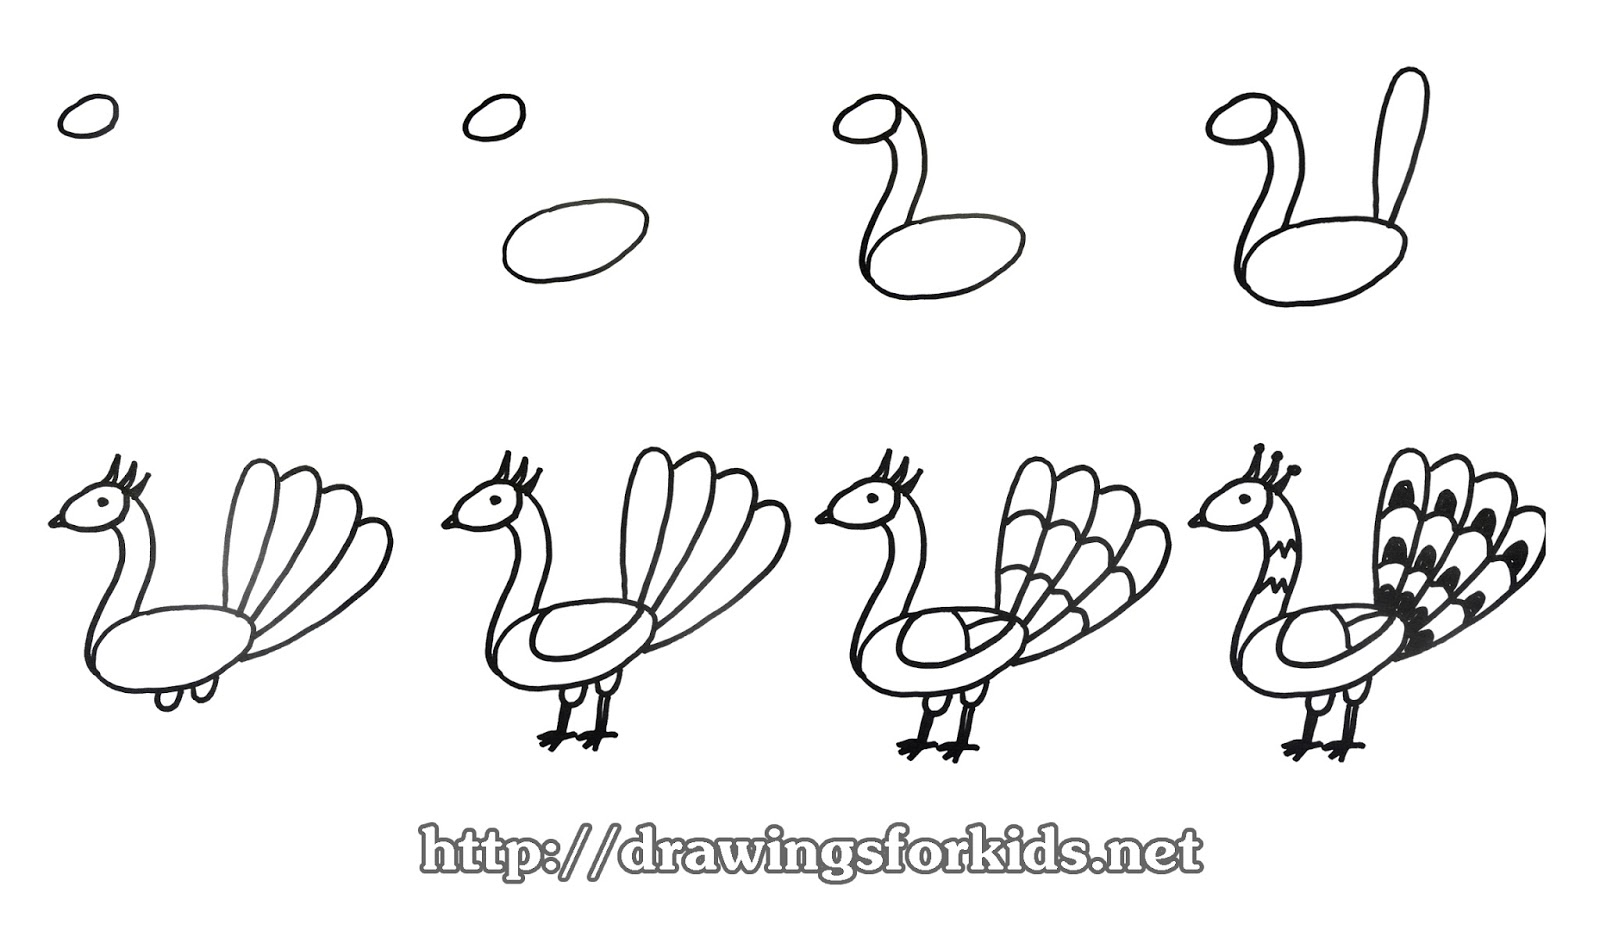 how to draw a pecock draw a peacock peacock drawing peacock sketch peacock art to pecock a draw how